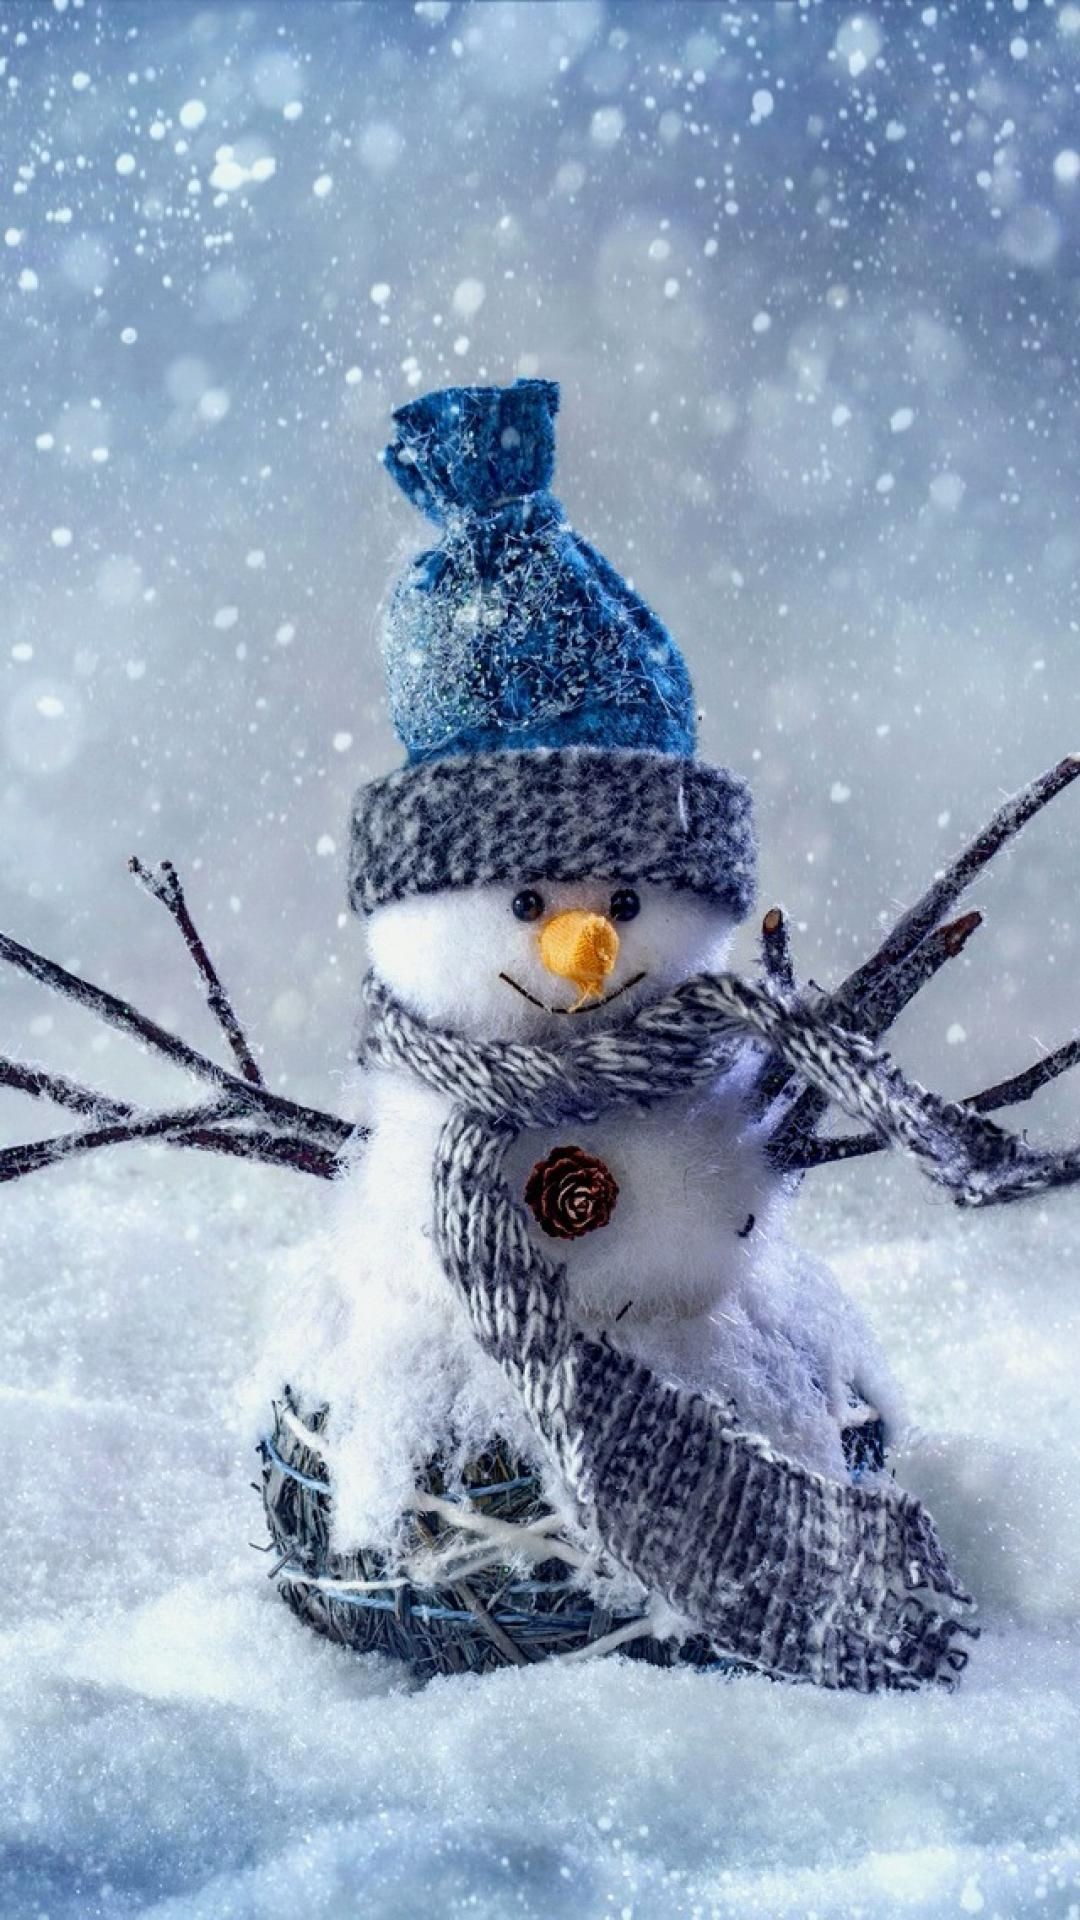 Snowman Wallpapers (65+ images)